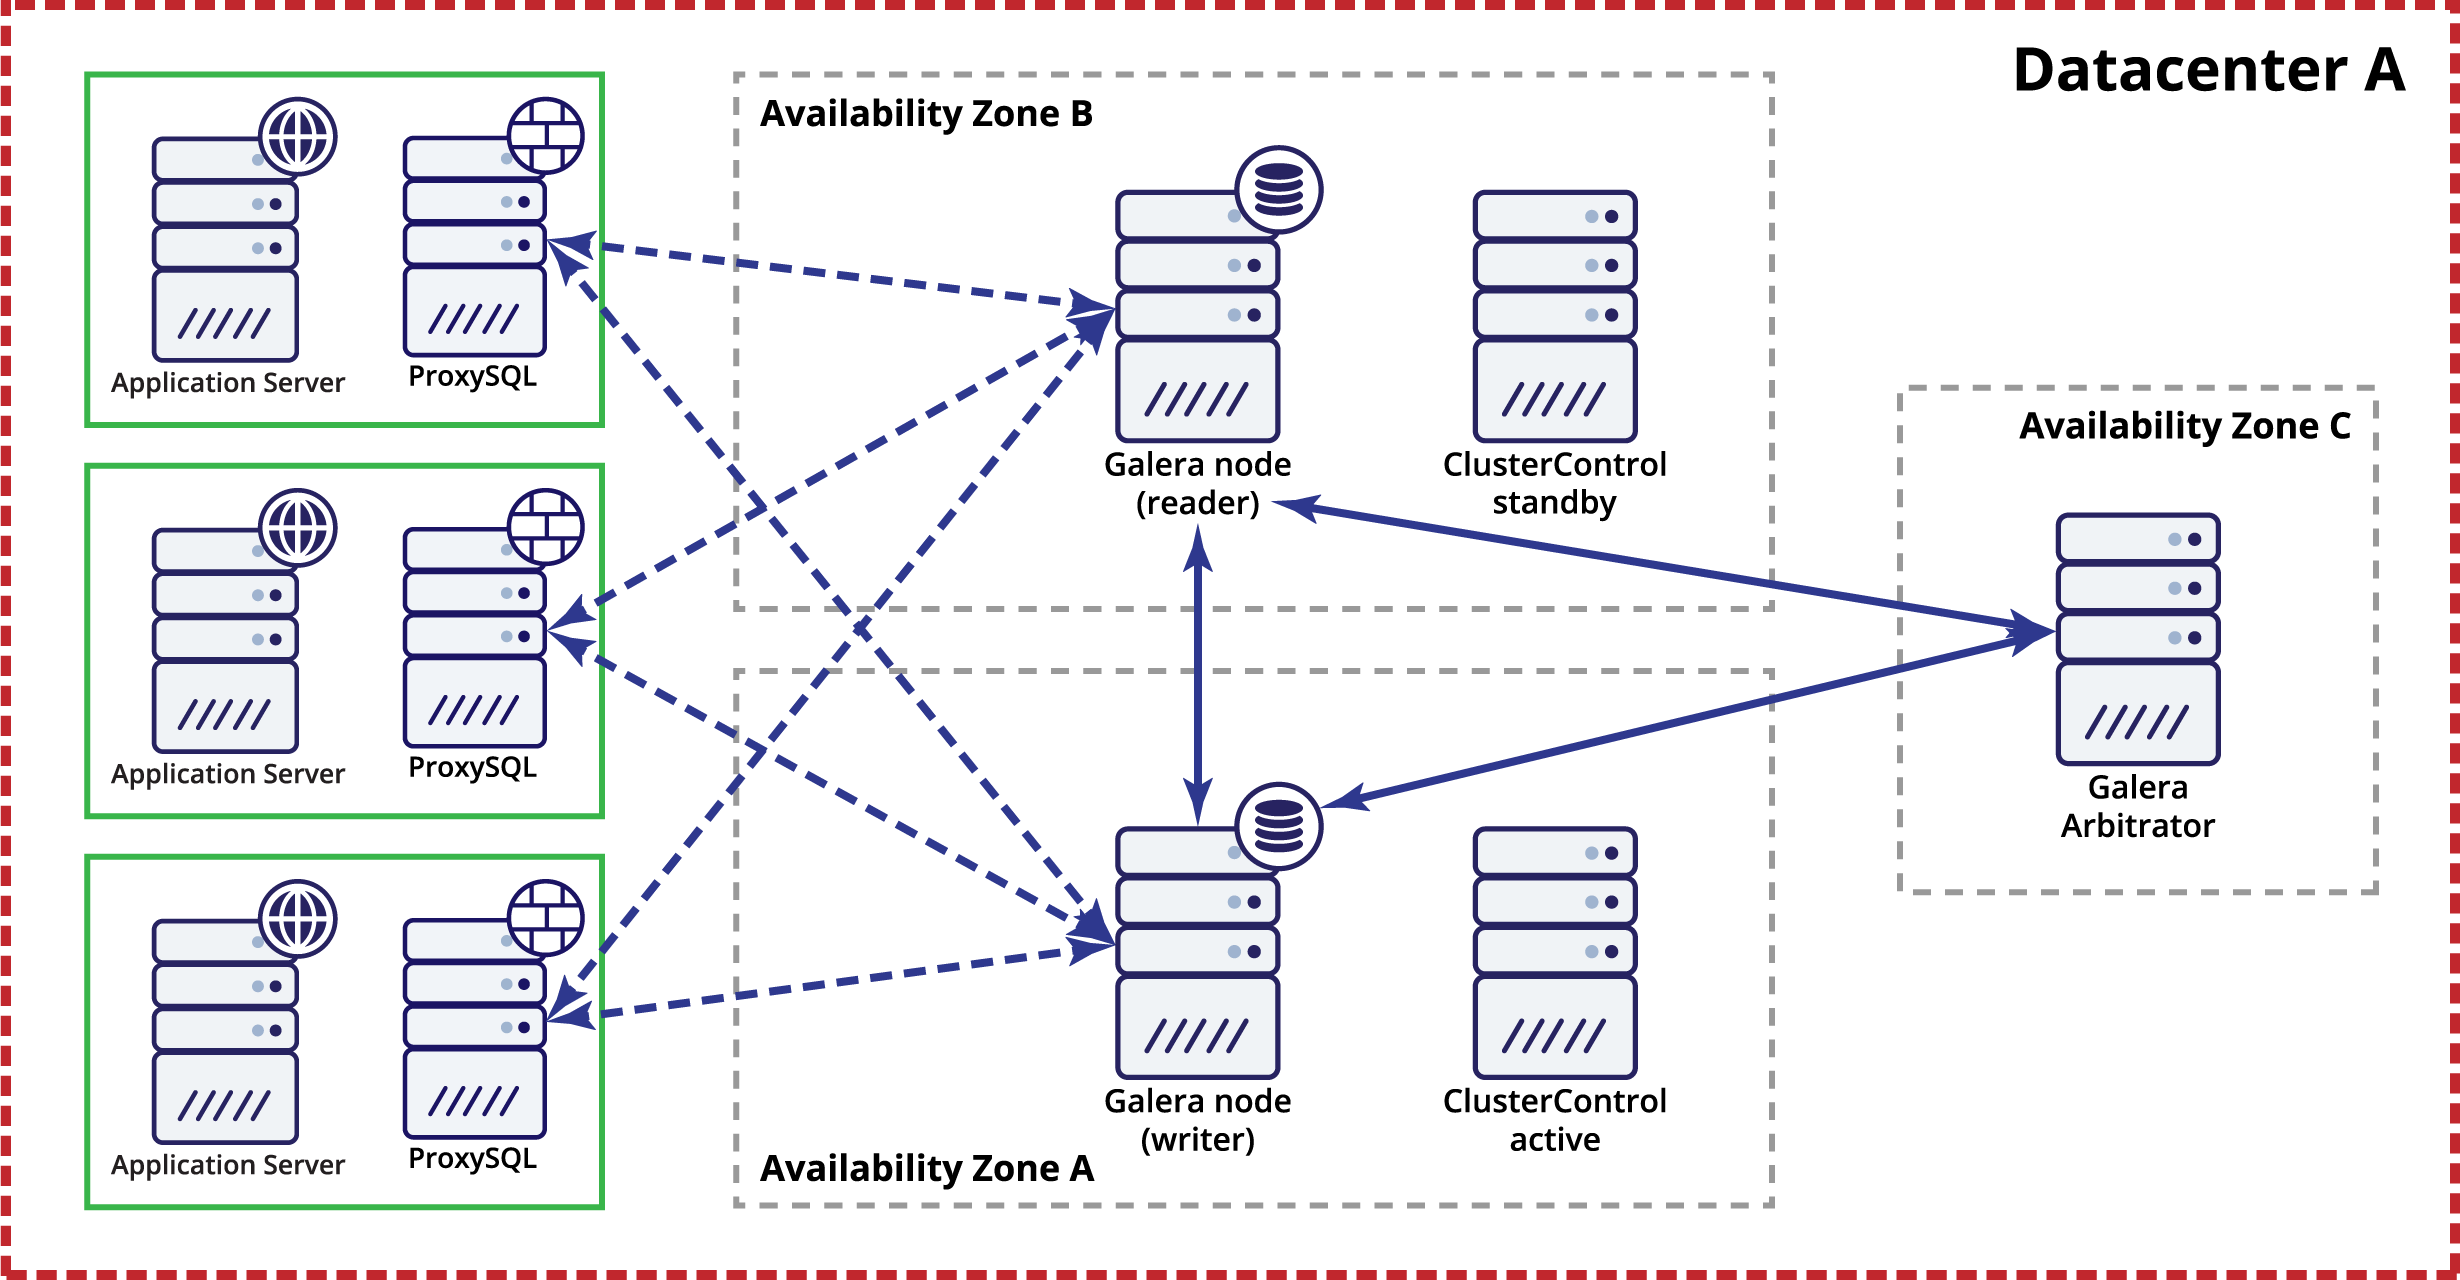 Example of a minimalistic deployment of a Galera cluster within a single datacenter